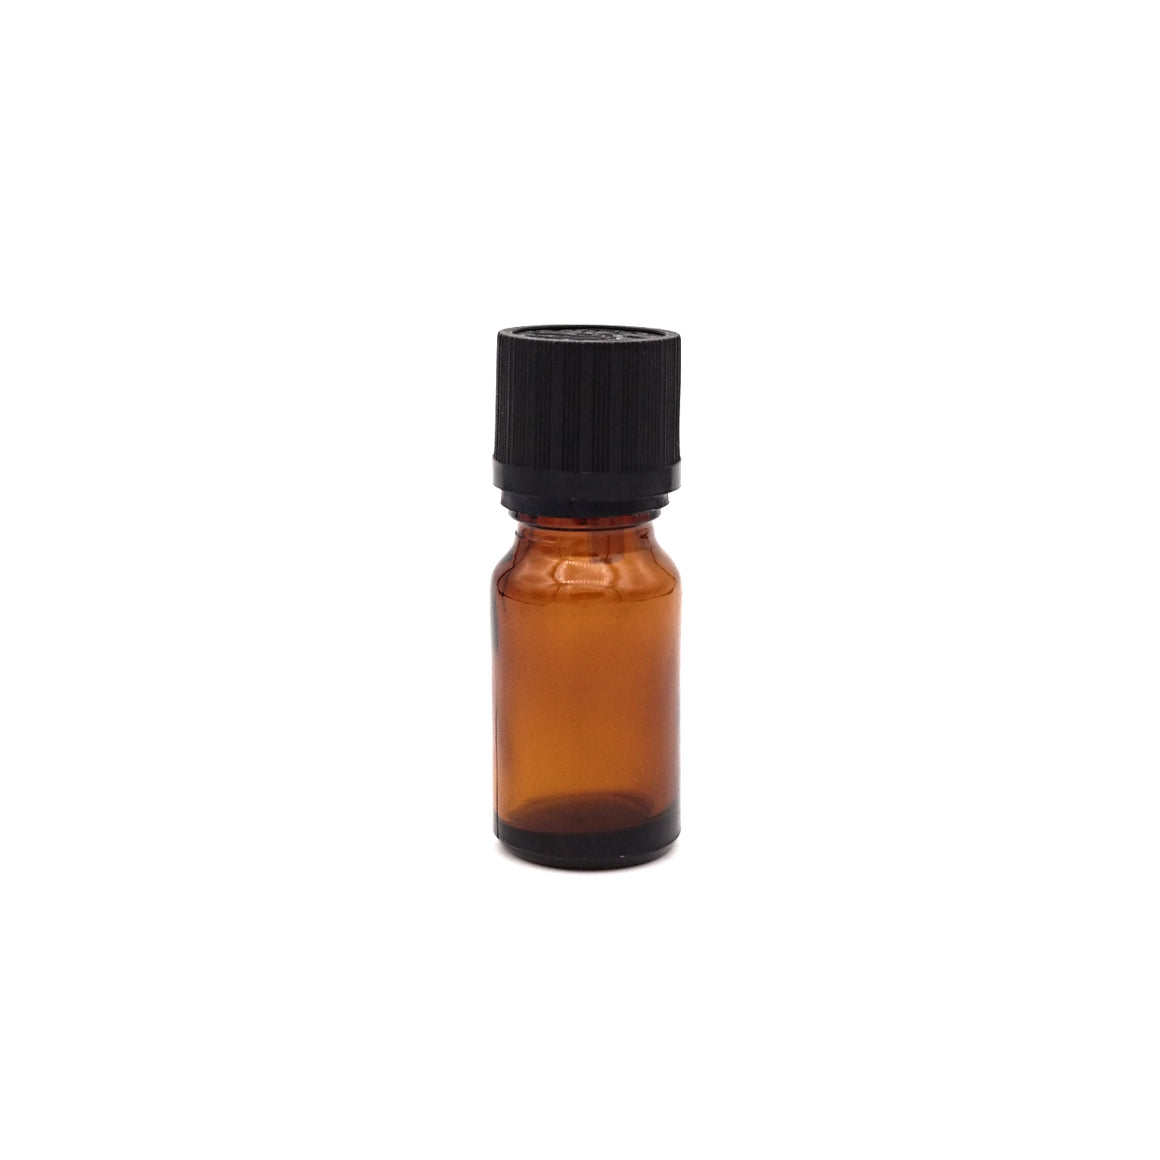 HOPE 10 ml amber bottle with dropper insert tamper evident childproof cap